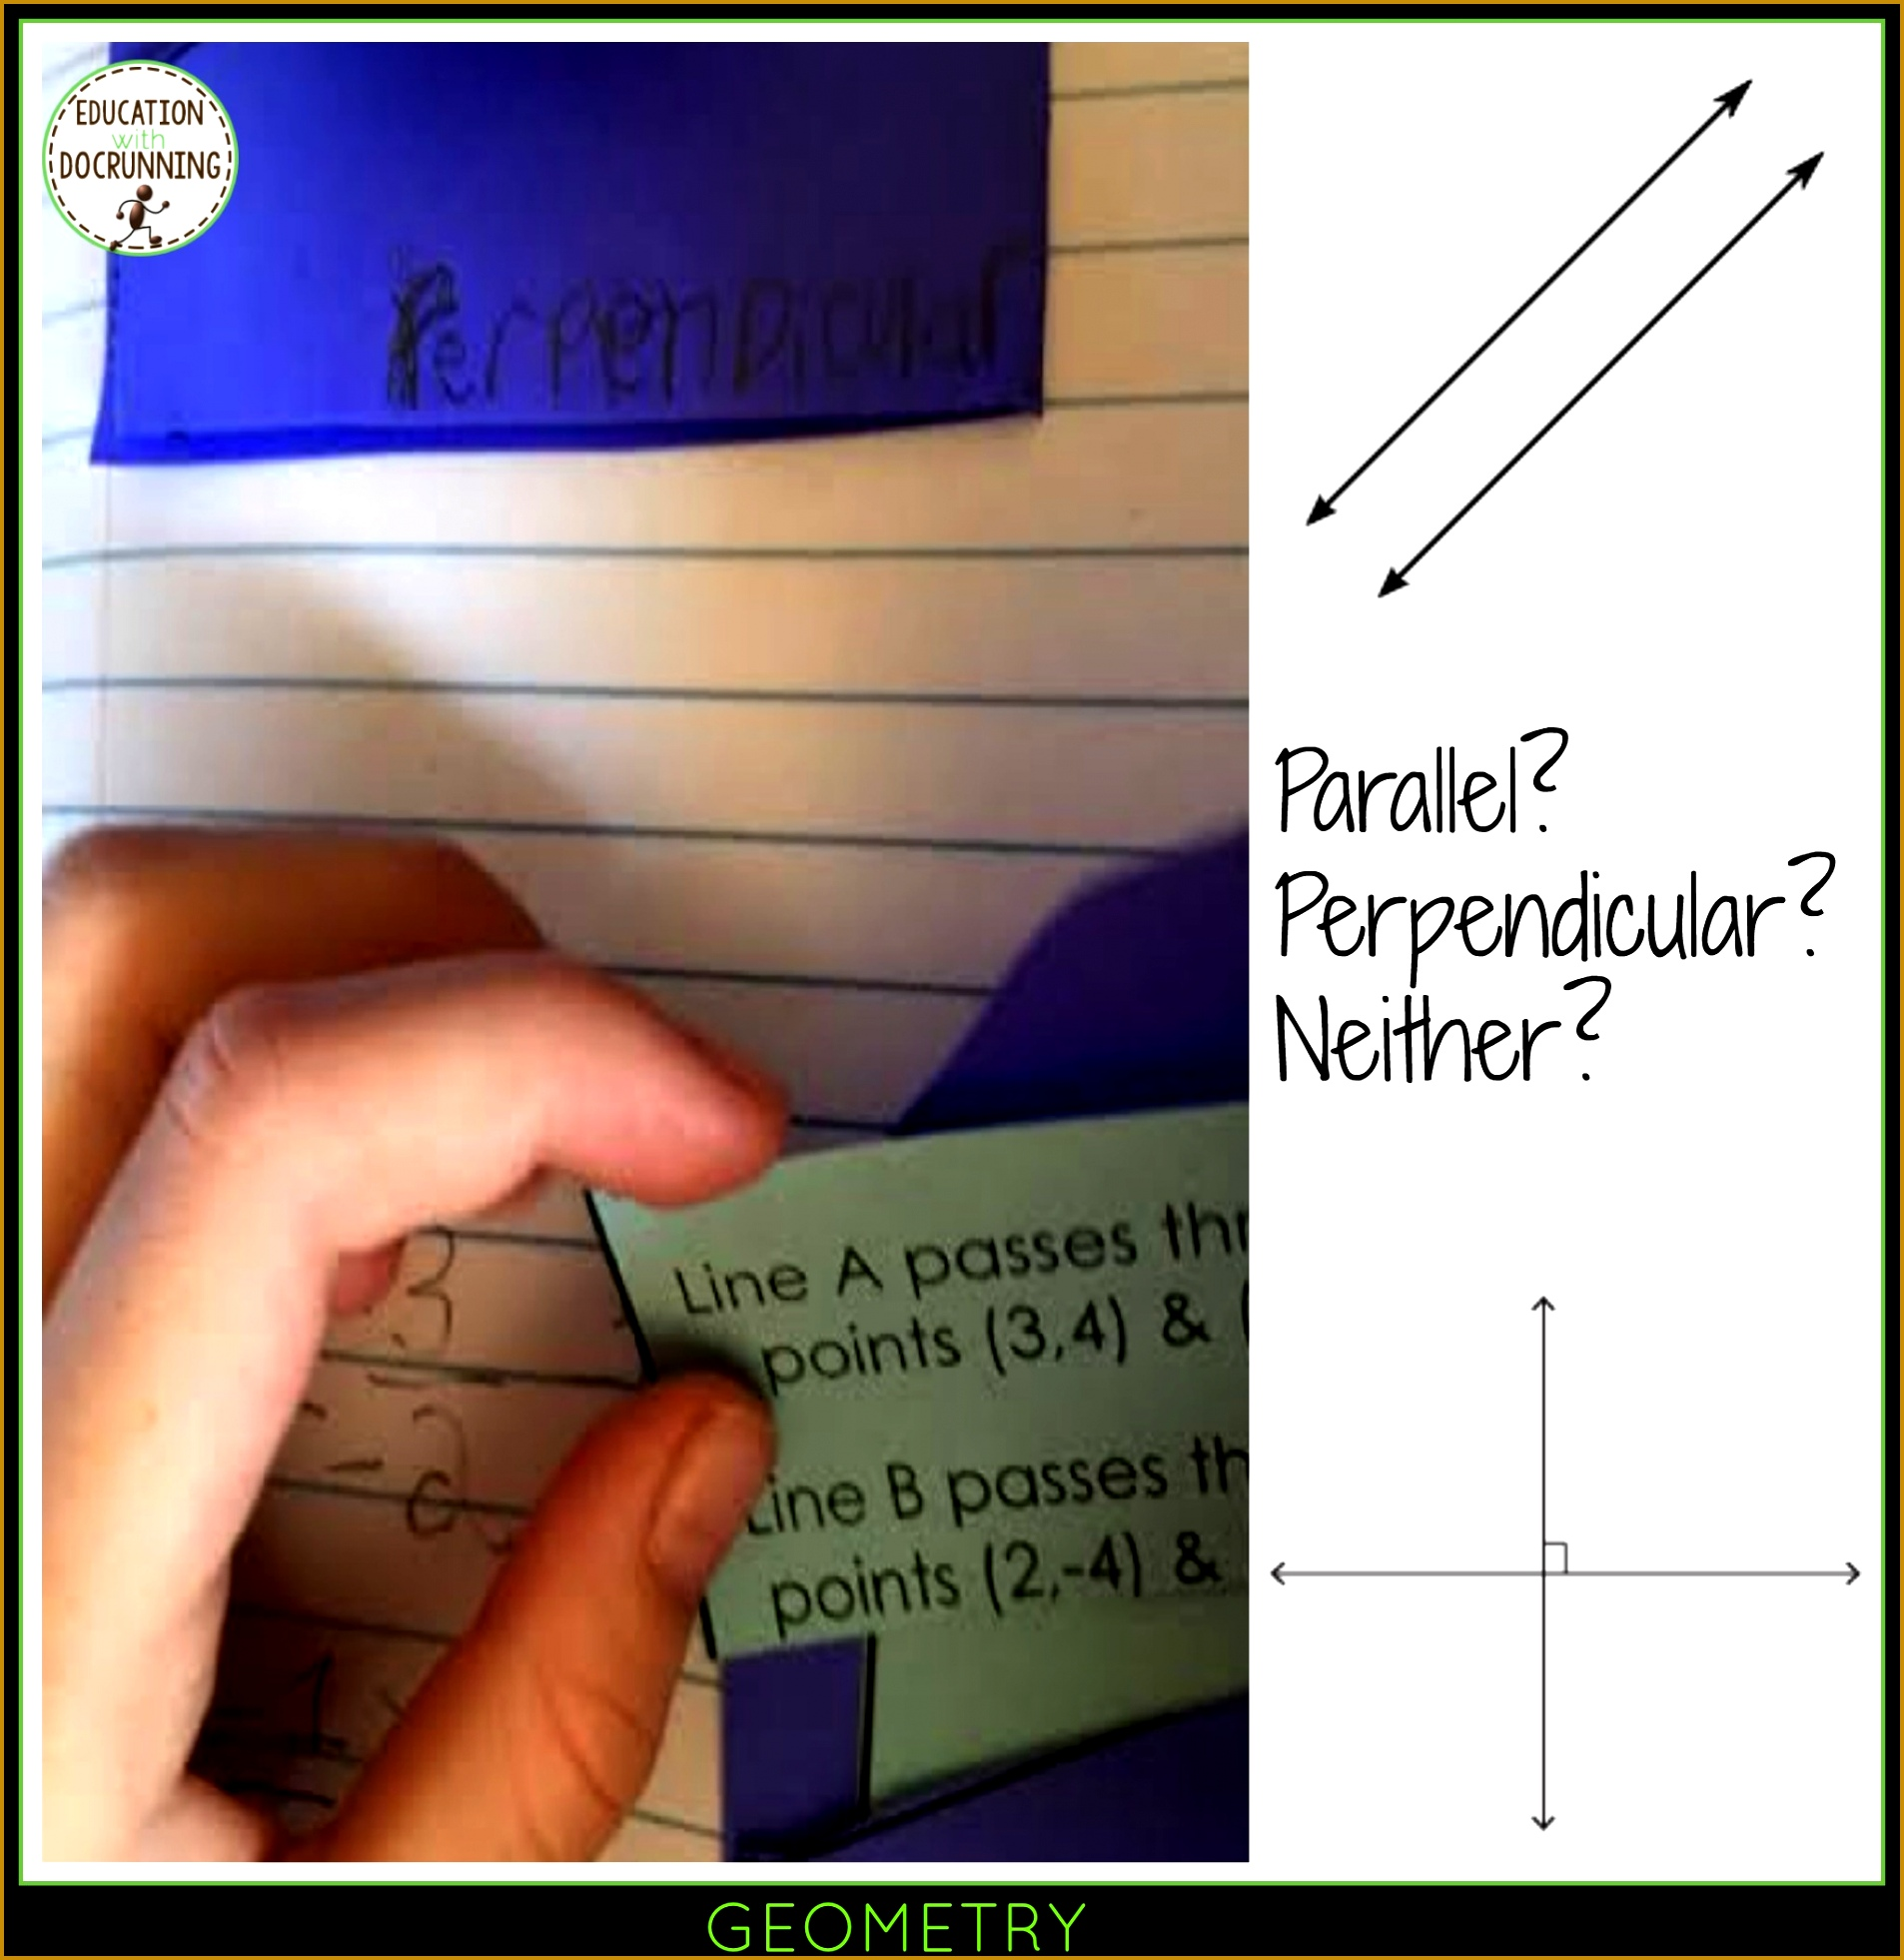 Students use points and equations of lines to classify lines as parallel perpendicular or neither 19621906